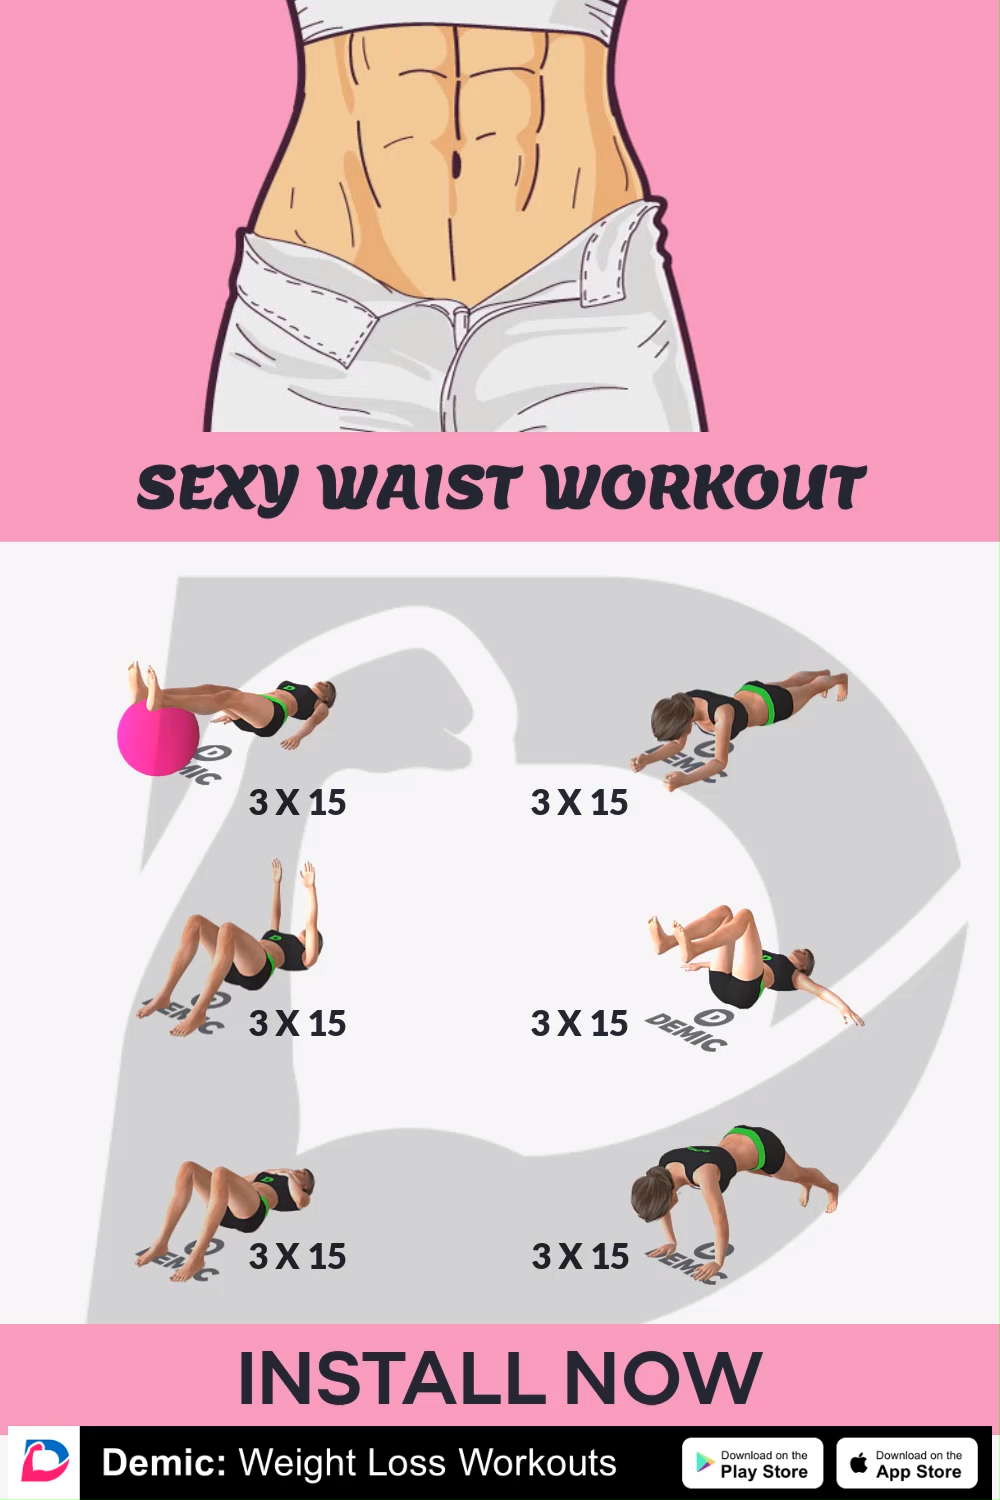 Pin by Tiffany Newton on Fitness | Workout, Aerobics workout